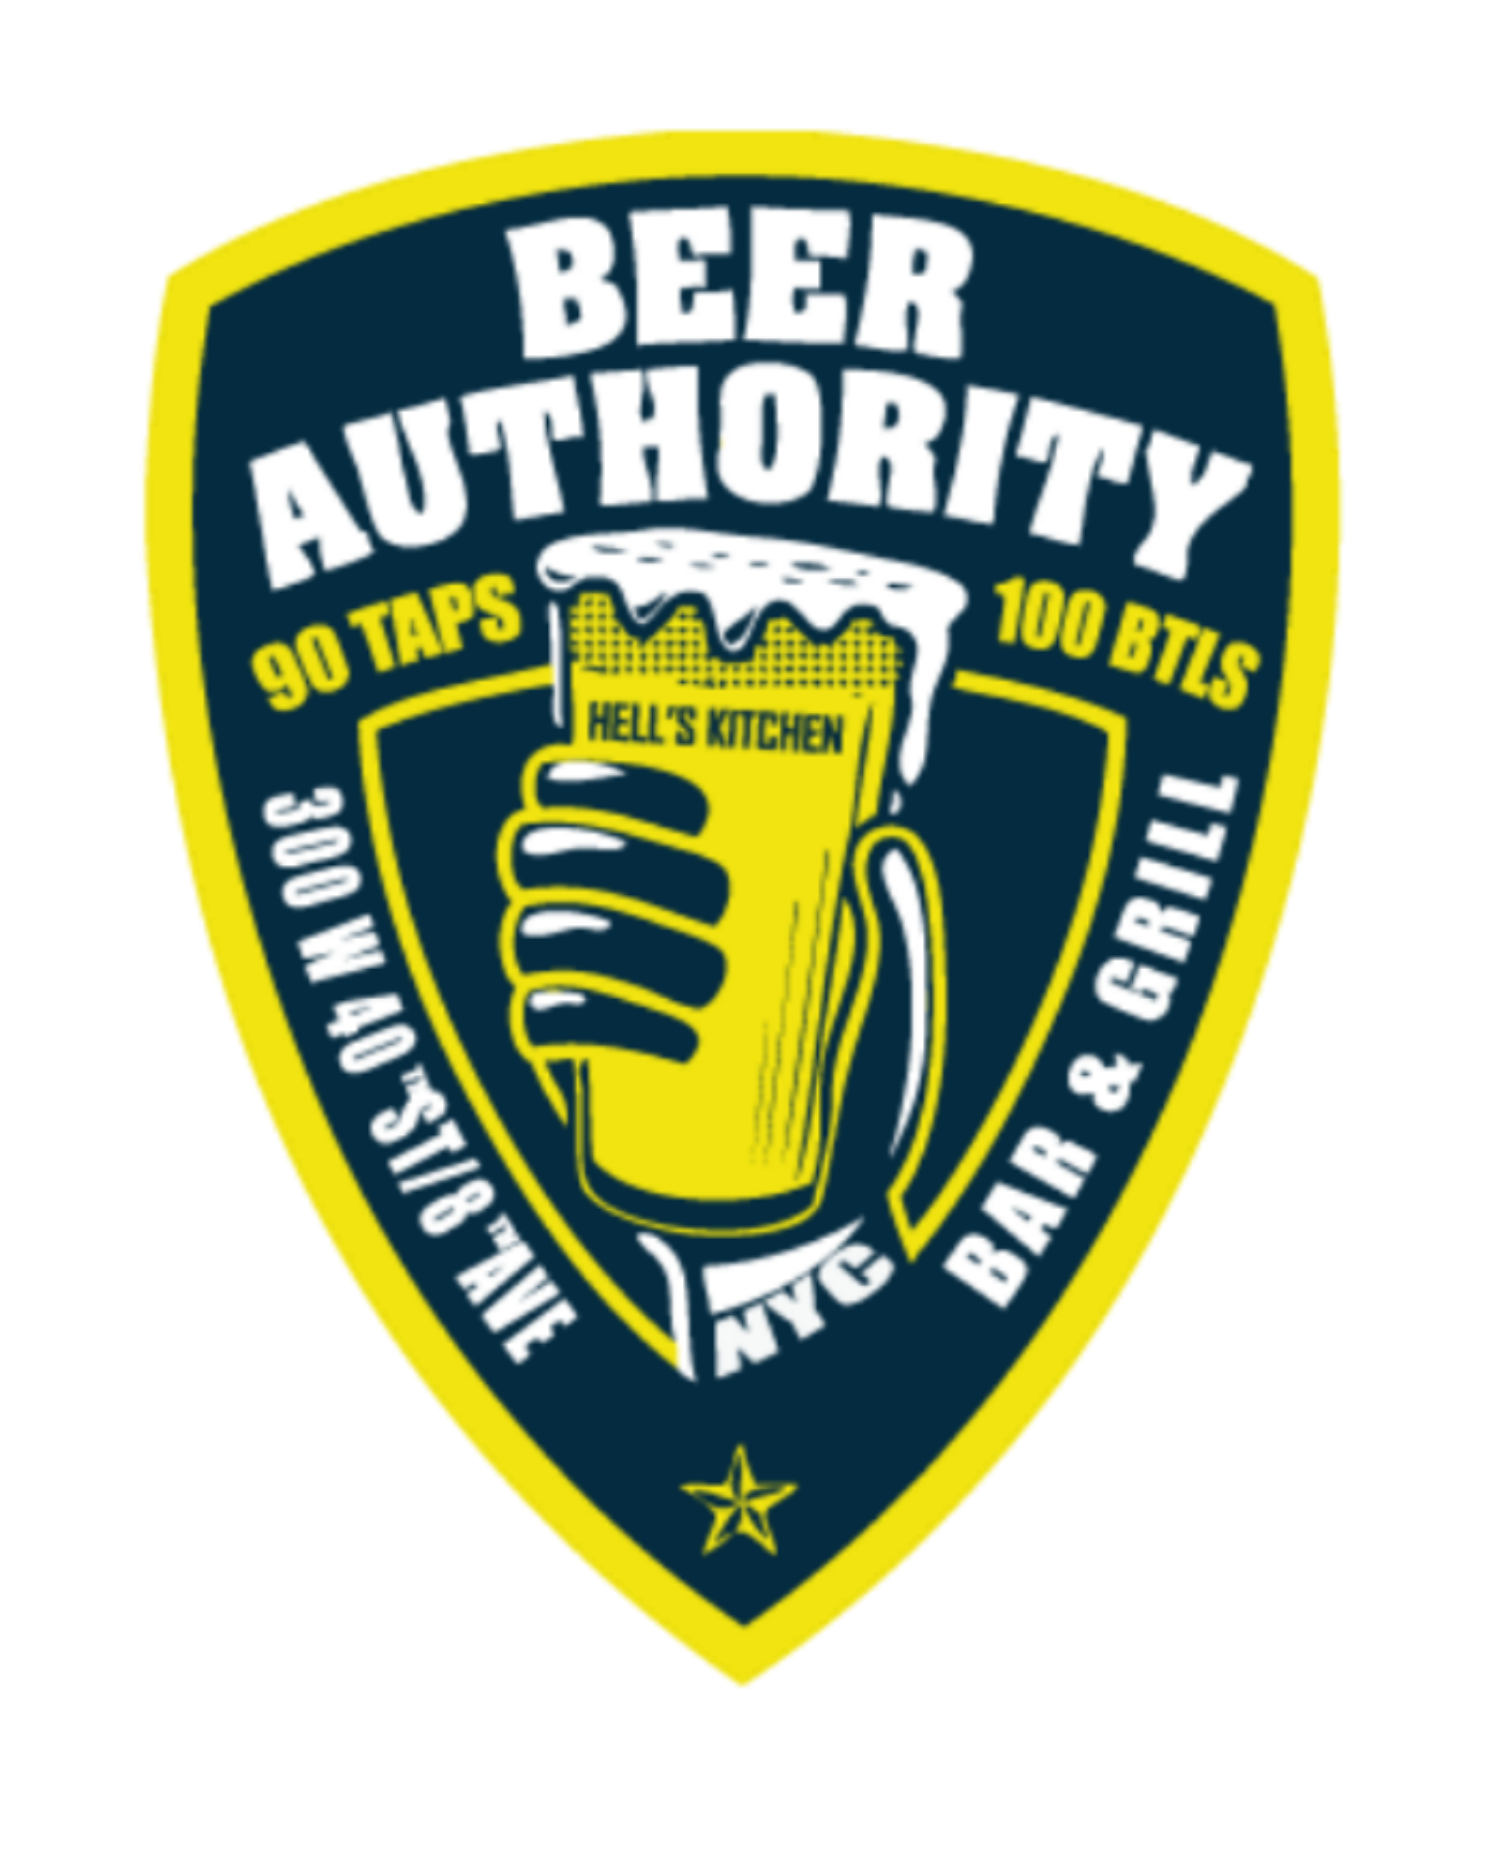 Beer Authority Nyc